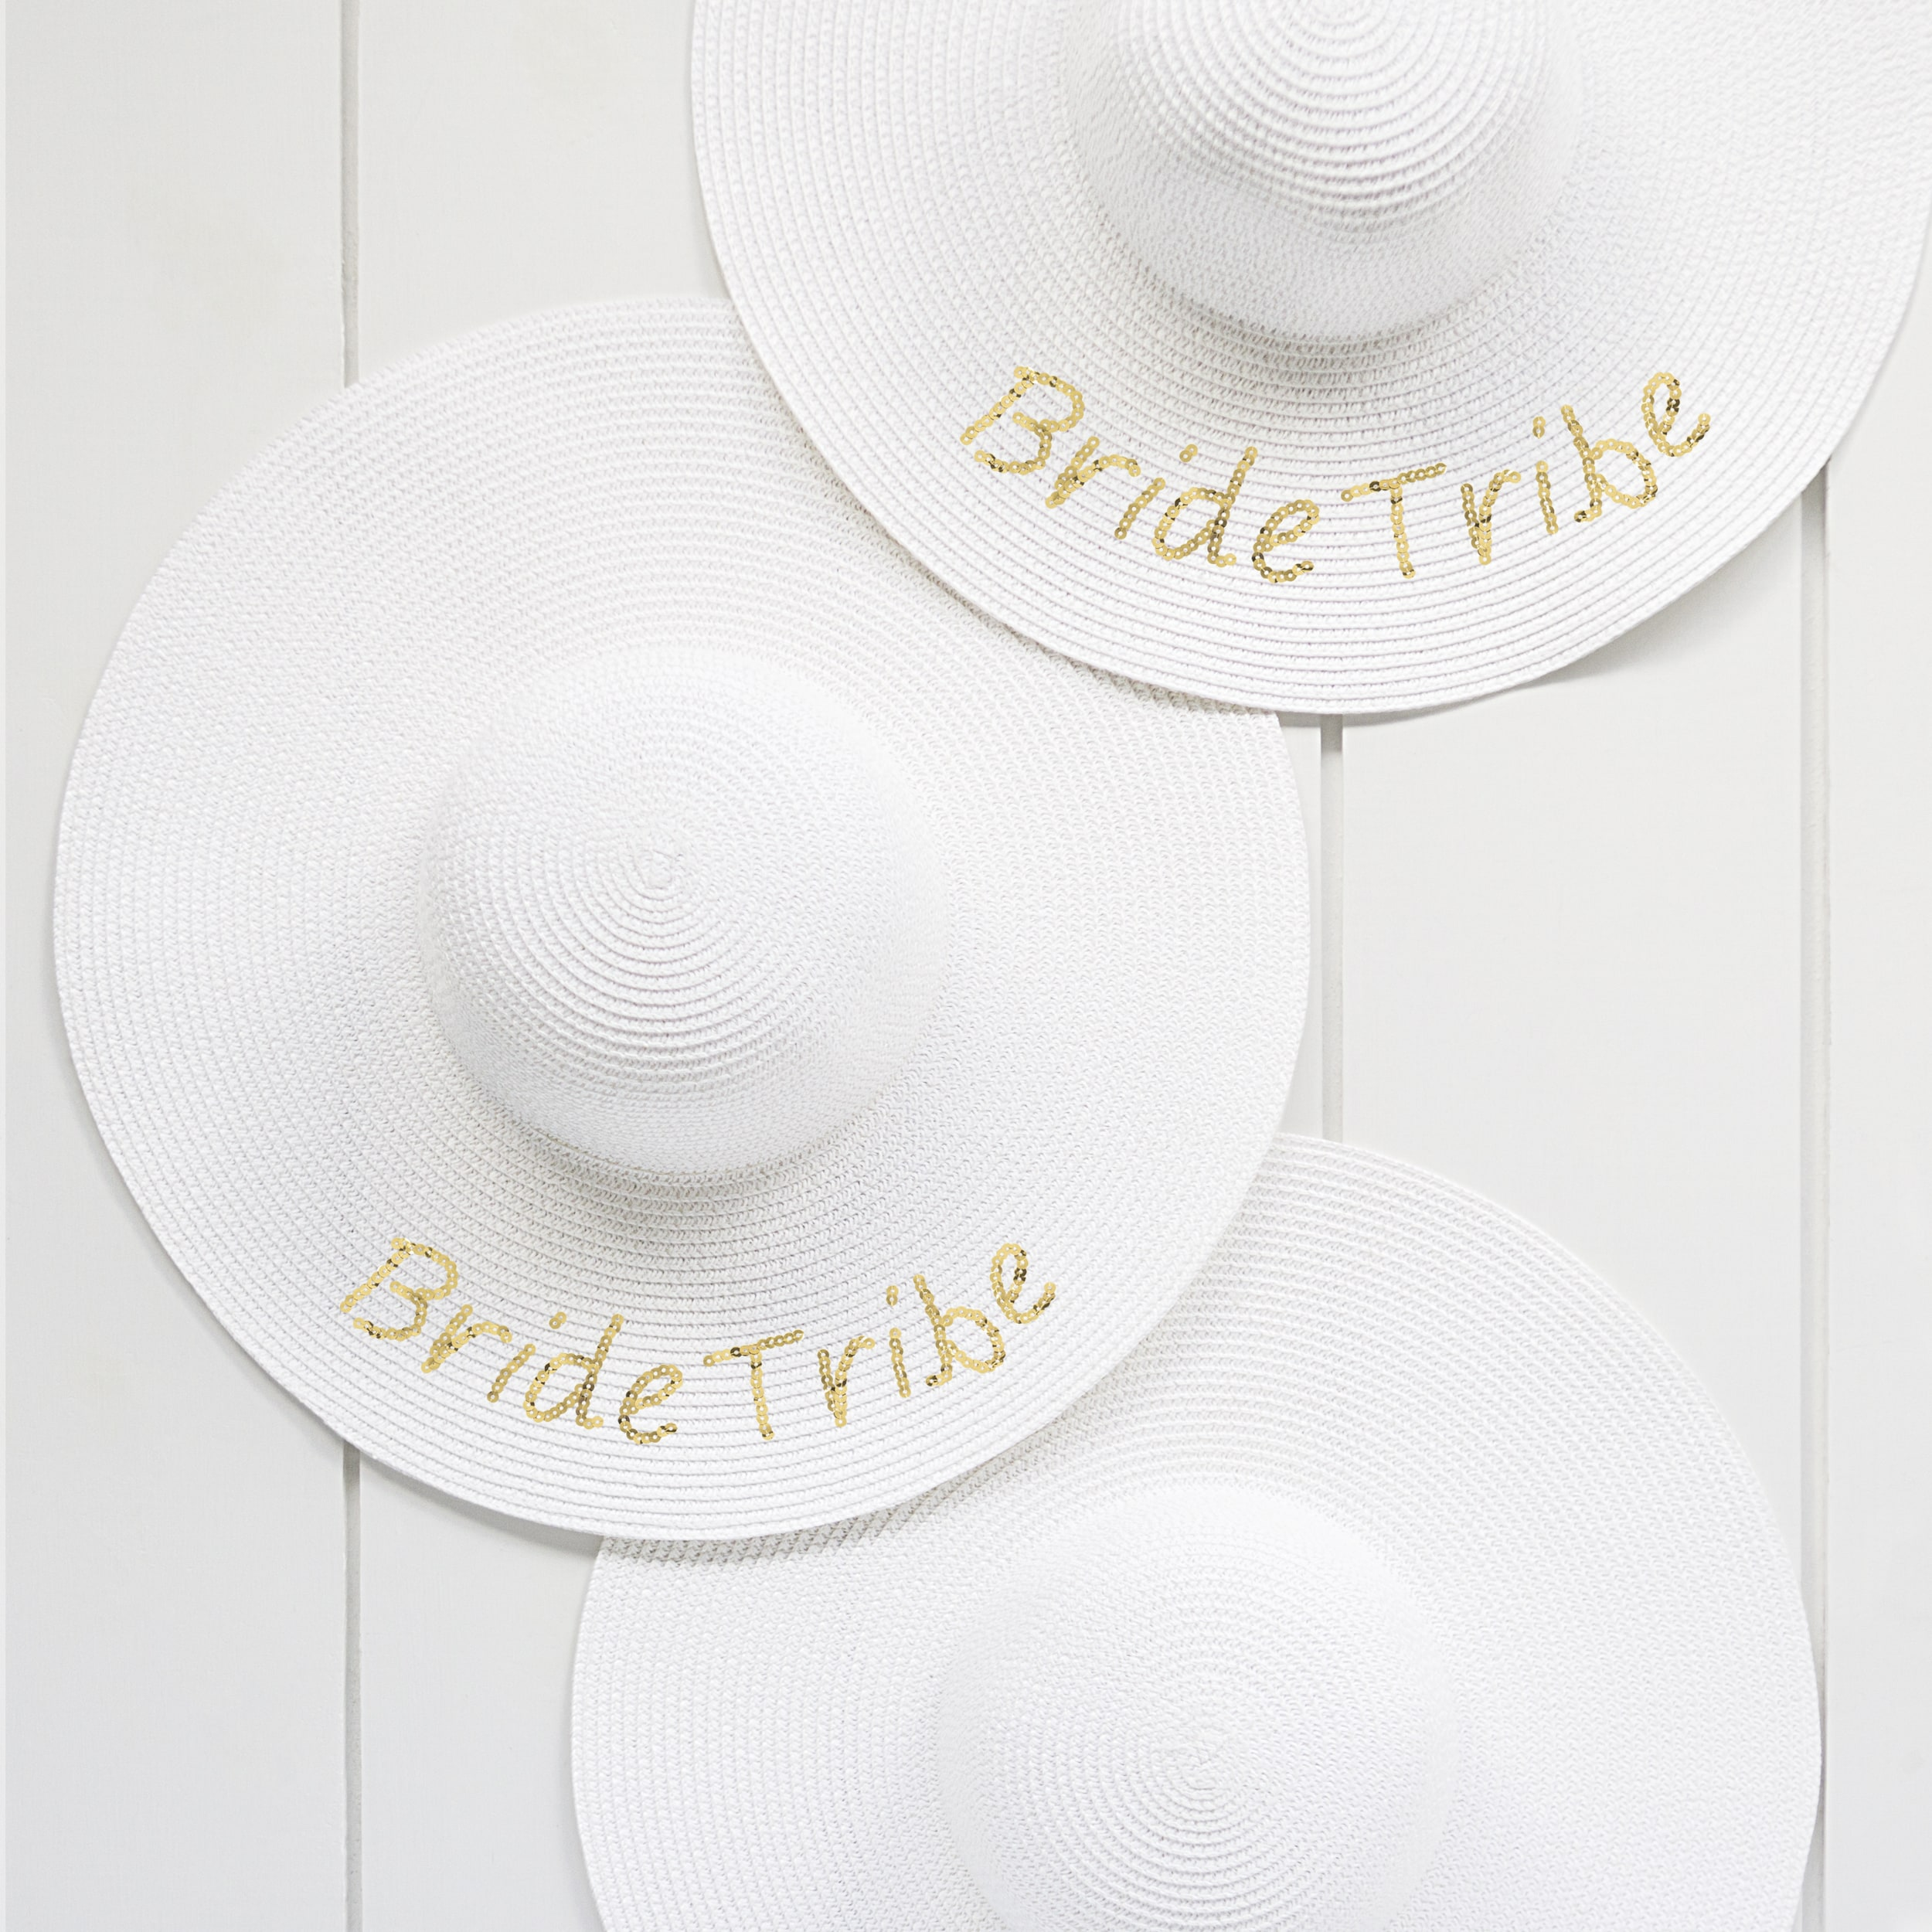 Shop Gold Sequin Bride   Bride Tribe Sun Hats - White - Free Shipping On  Orders Over  45 - Overstock - 18151807 4d0fbc957e6